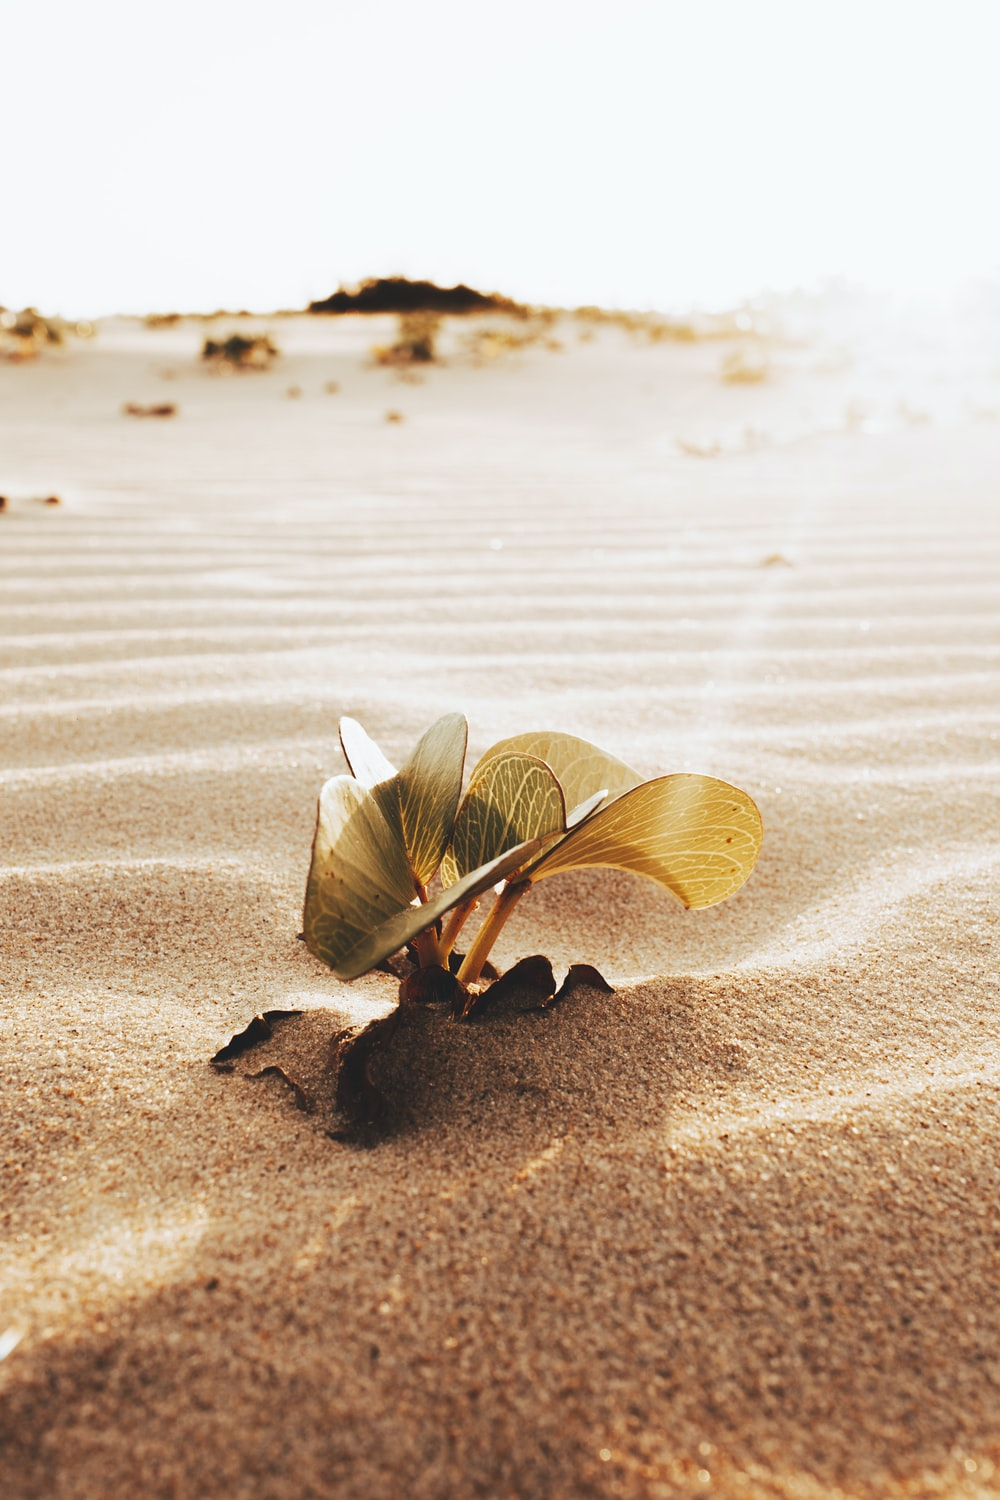 brown and white butterfly on brown sand during daytime